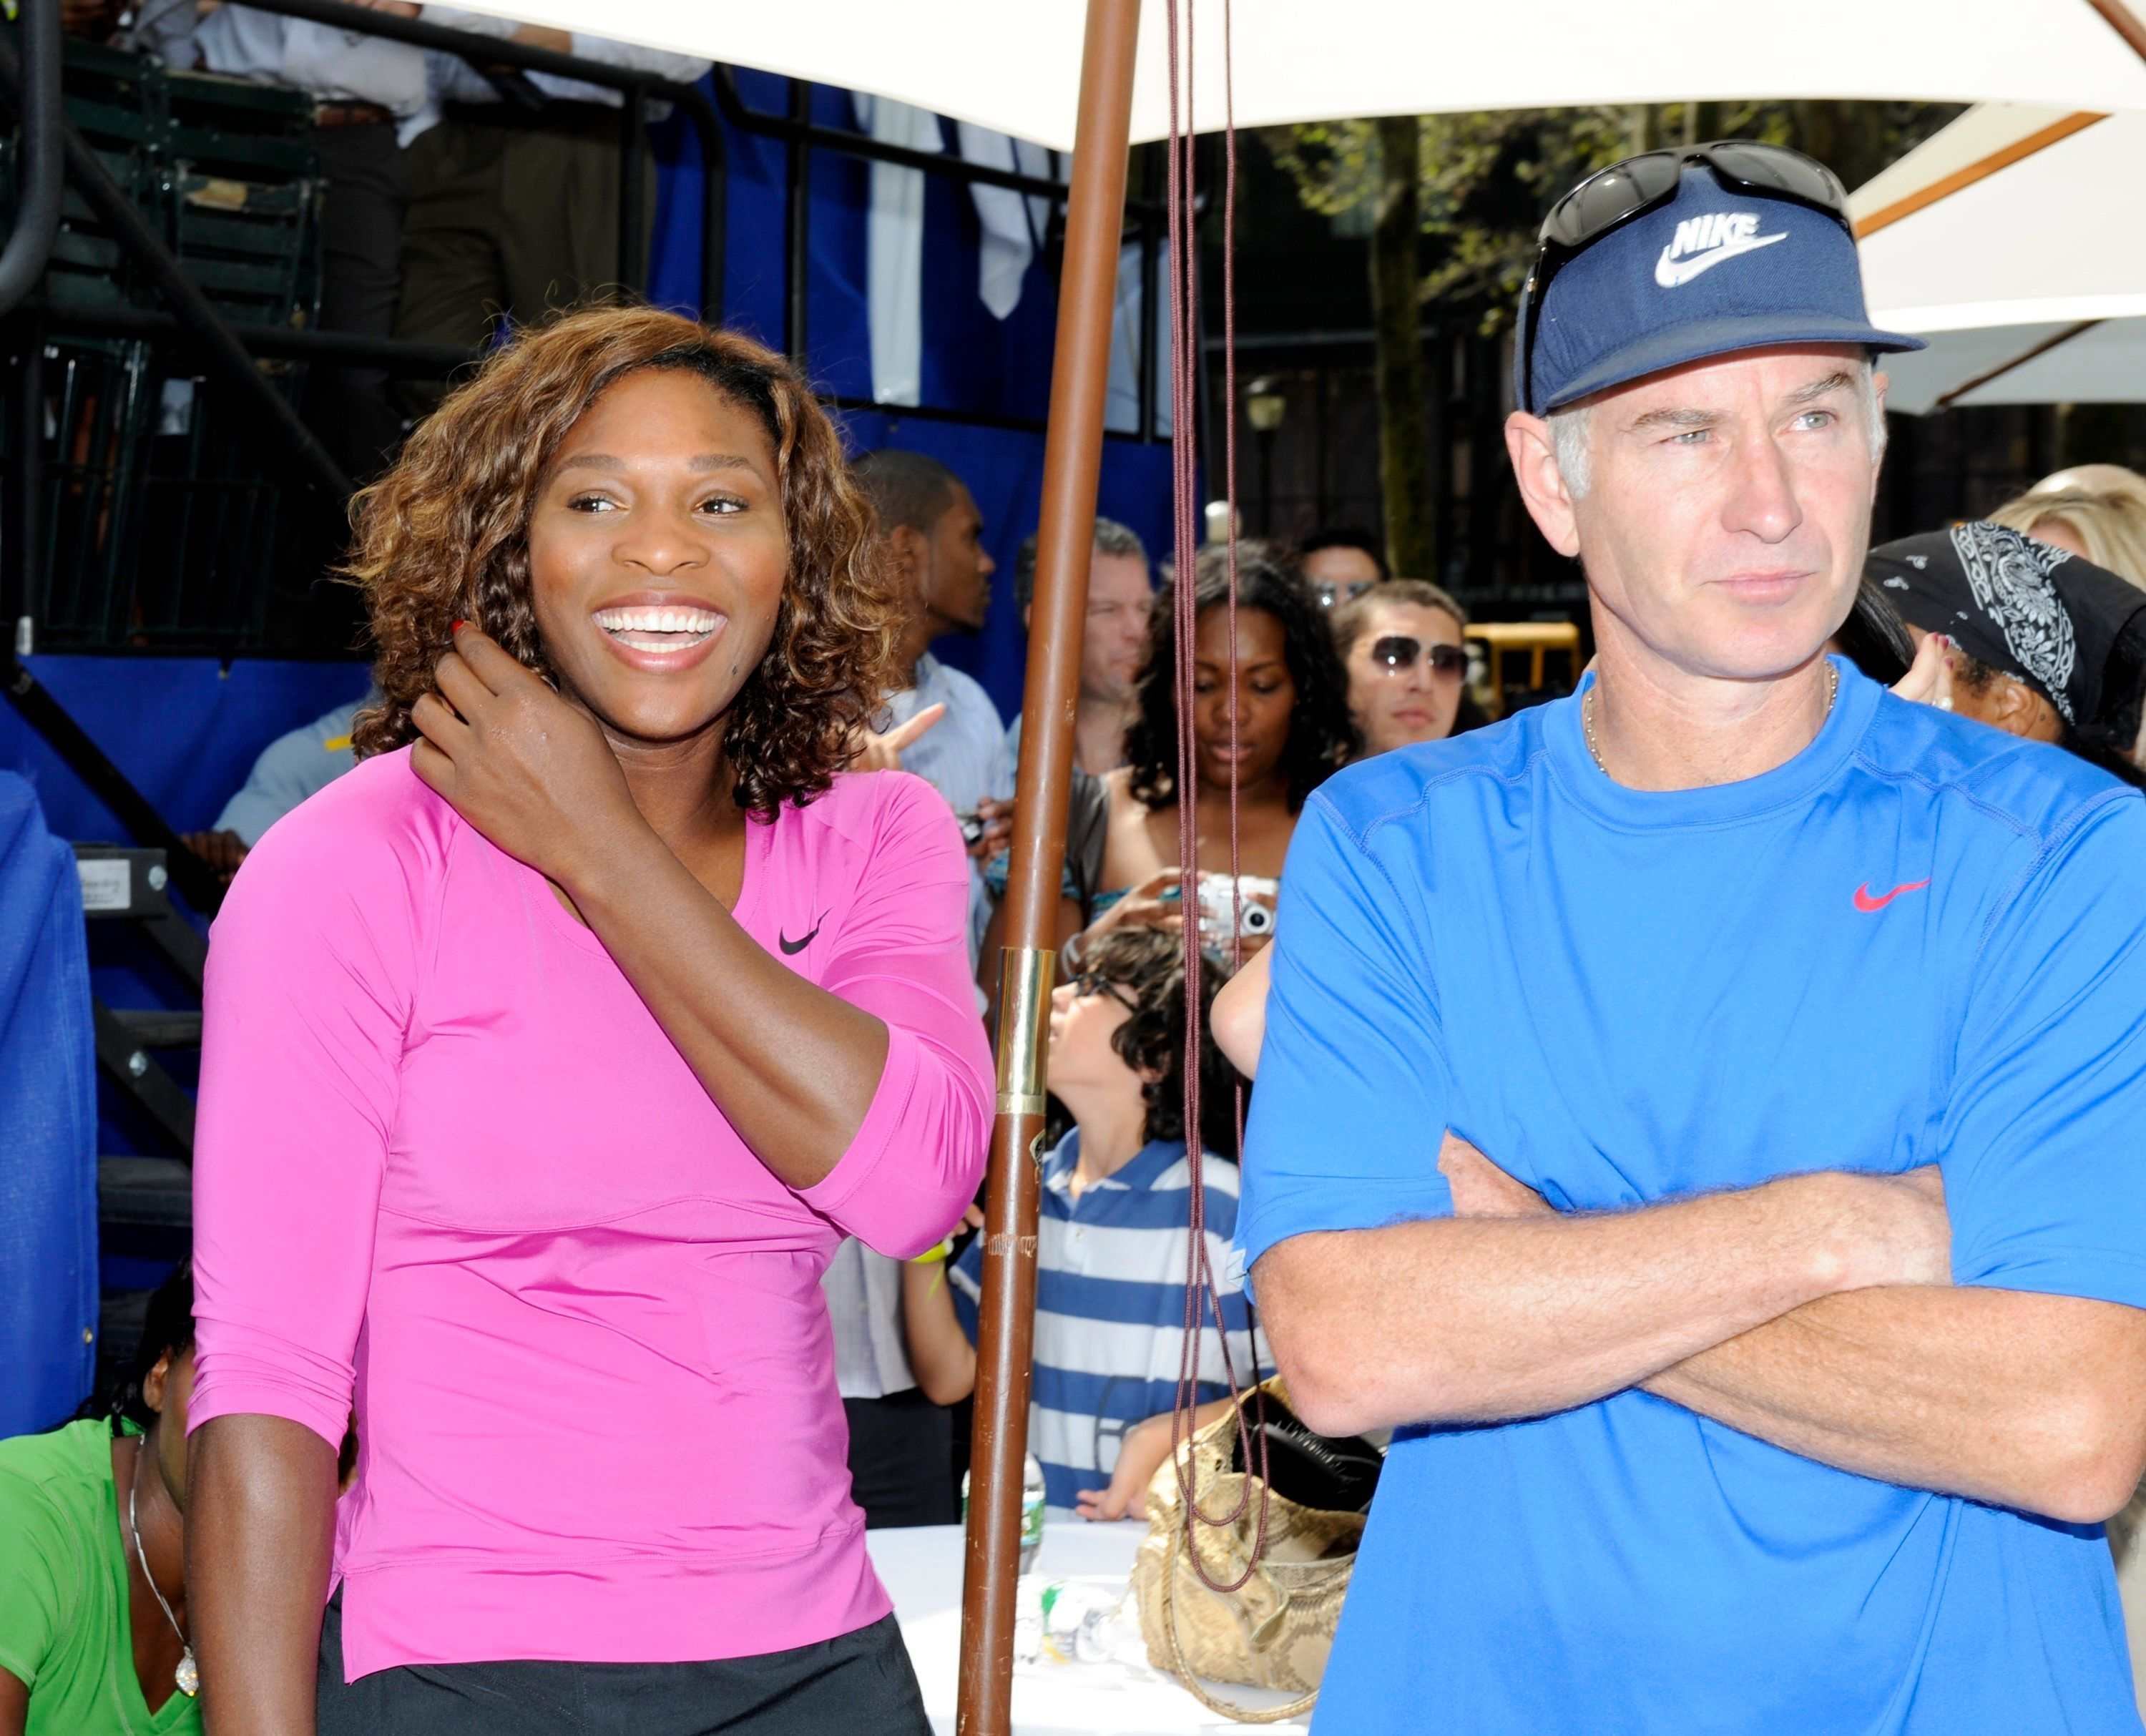 NEW YORK - AUGUST 26: Serena Williams looks on with John McEnroe before their match at the DIRECTV ESPN US Open Experience promoting DIRECTV's mosaic coverage of the US Open August 26, 2009 at Bryant Park in New York Cty. (Rob Tringali/Getty Images for DirecTV)